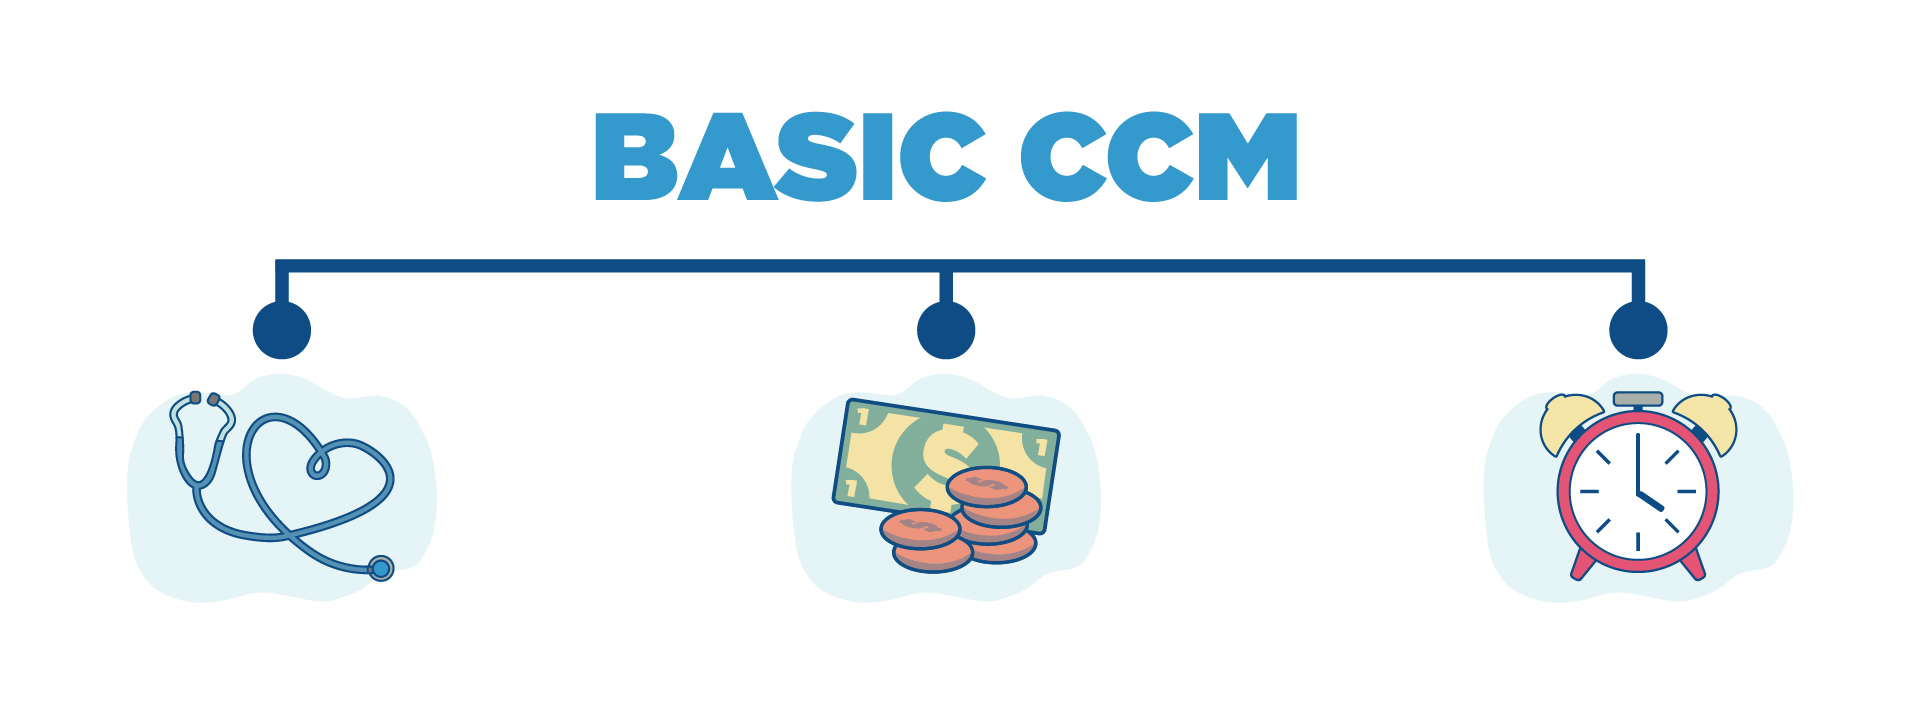 Basic CCM CPT Codes